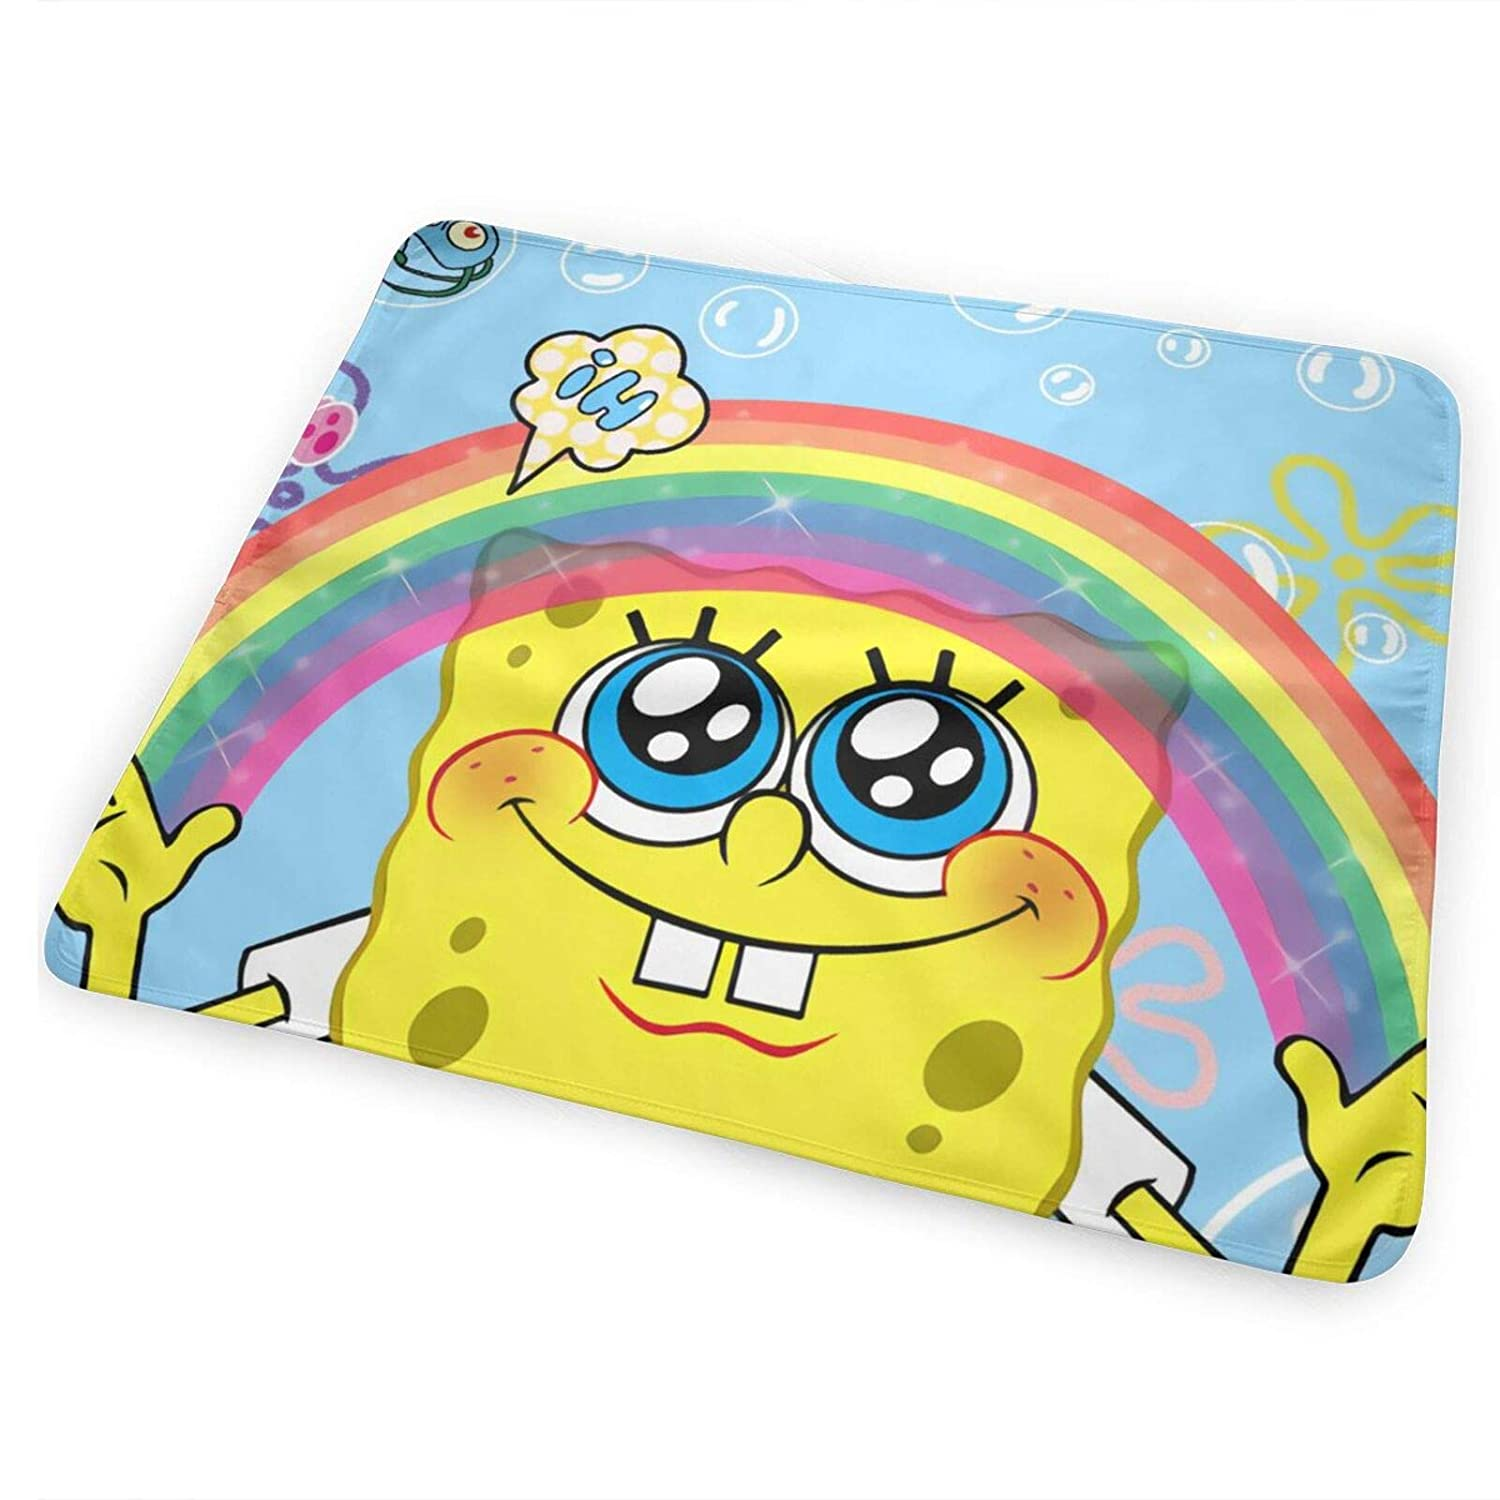 Sponge-Bob Portable Changing Pad is A Large Size 65cm x 80cm-100% Polyester Fiber (Polyester) Reusable Changing Pad for Baby Boys and Baby Girls.